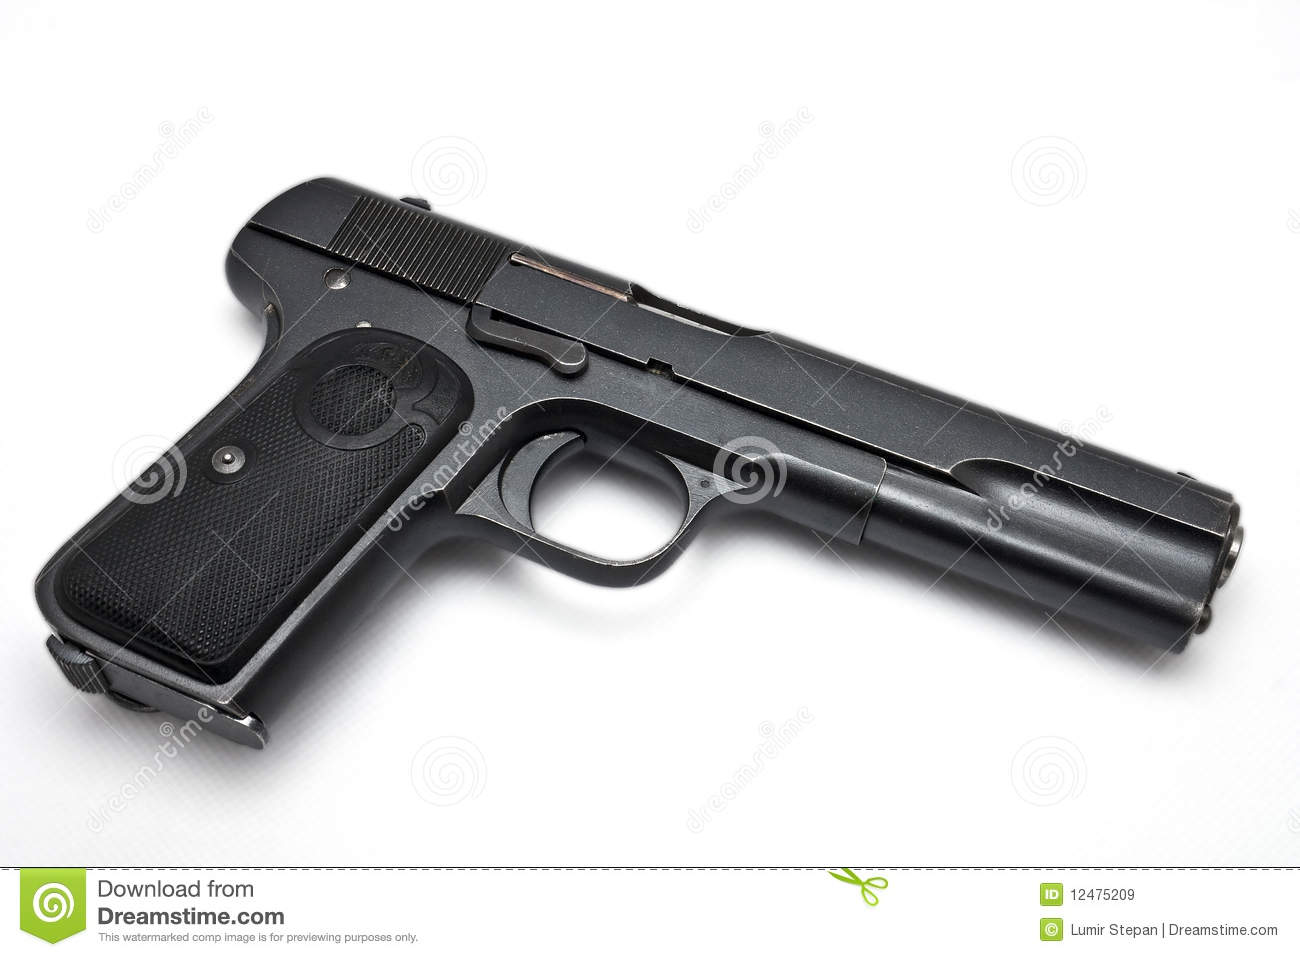 gun white background - photo #11